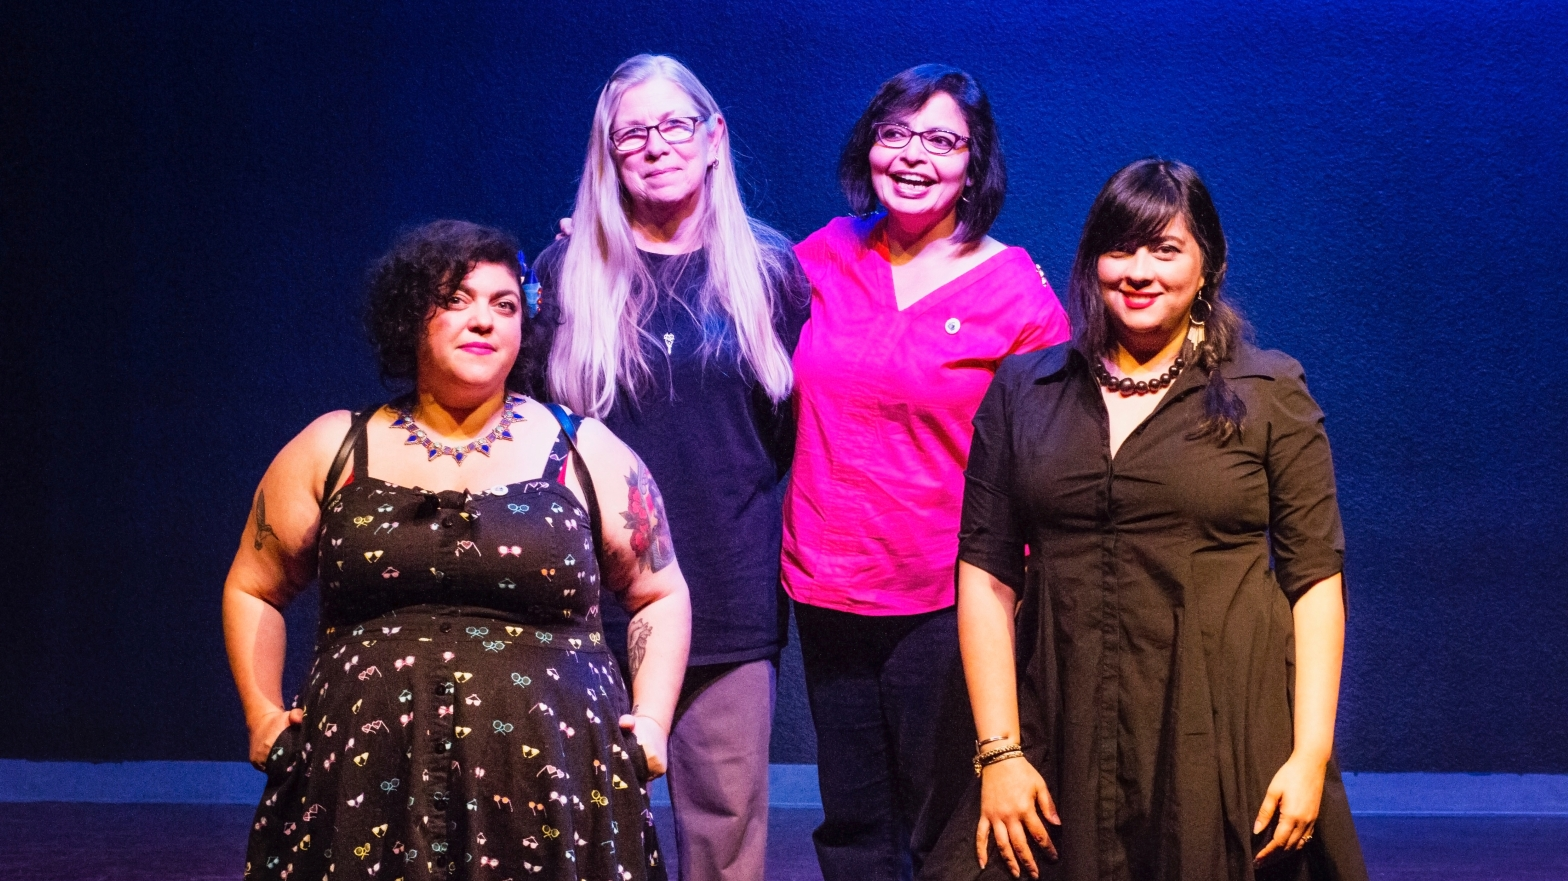 Group shot of all four readers: Randa Jarrar, Connie Hales, Samina Najmi, and Marisol Baca